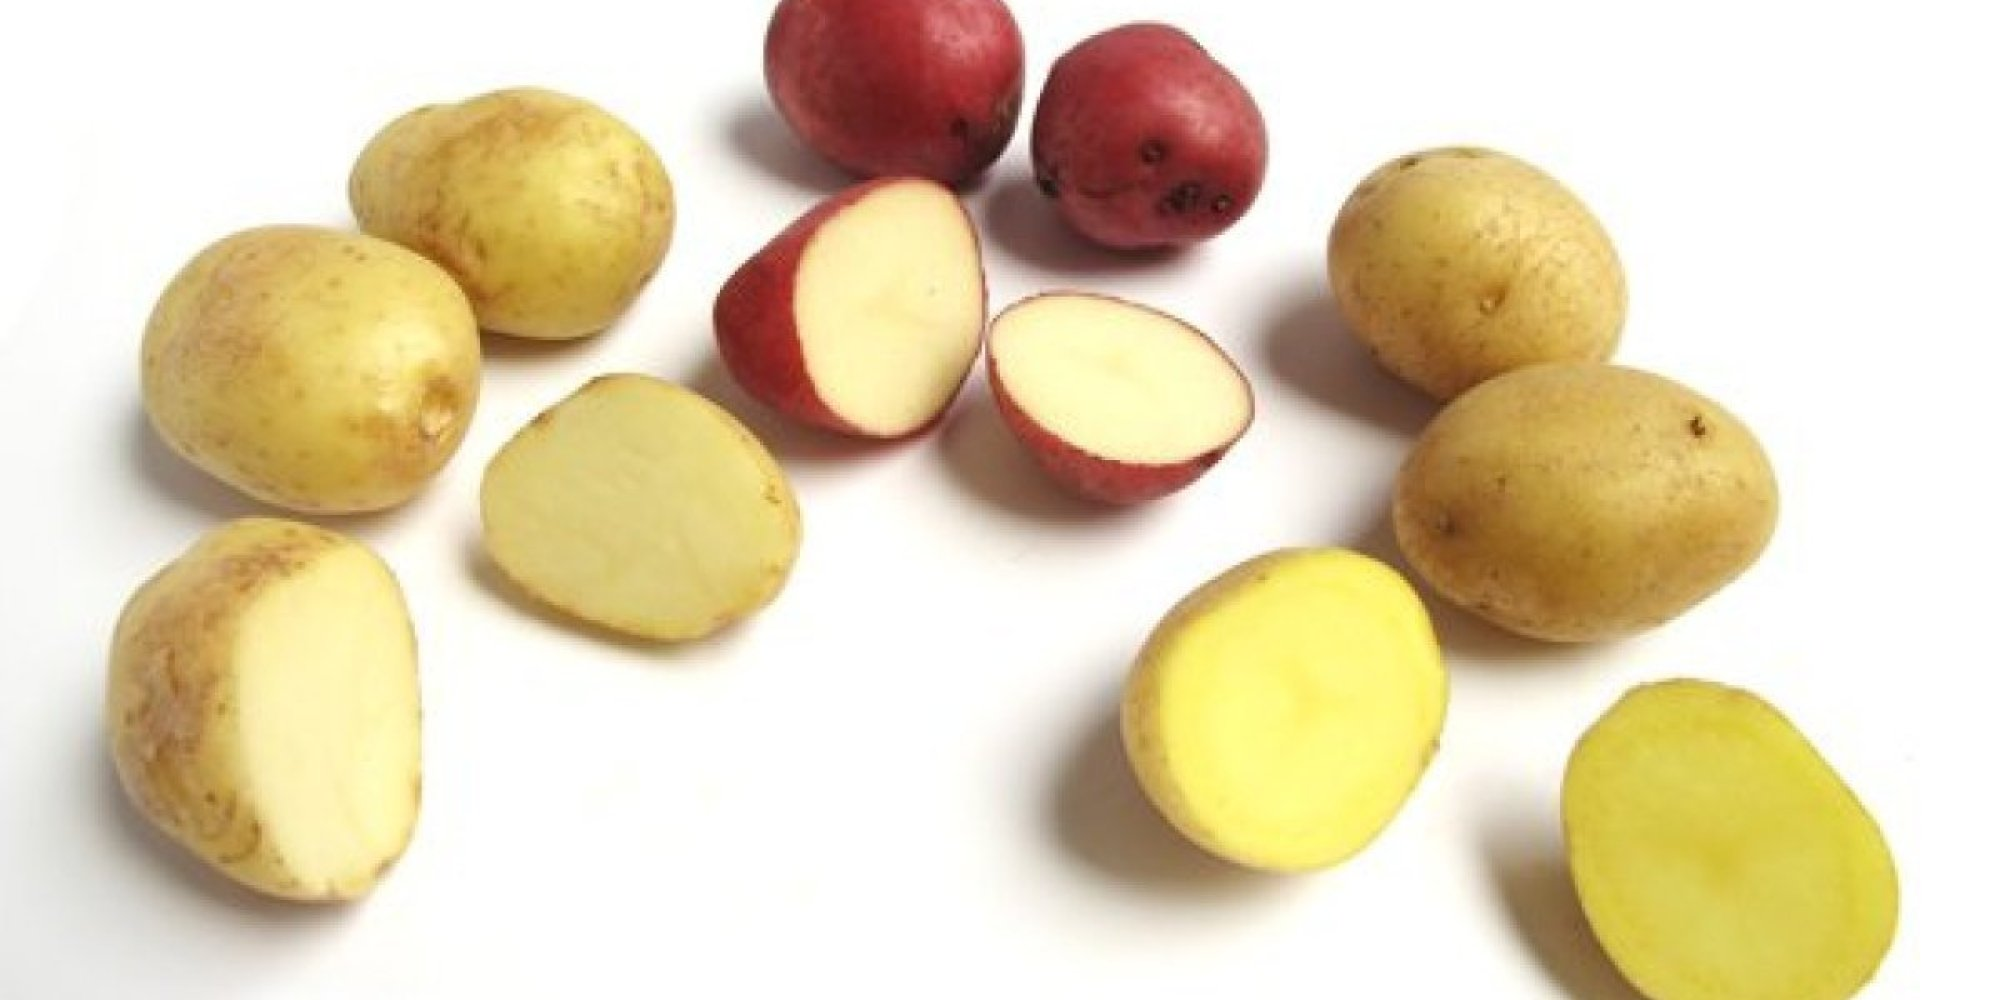 A guide to every type of potato you need to know huffpost for Different ways to cook russet potatoes